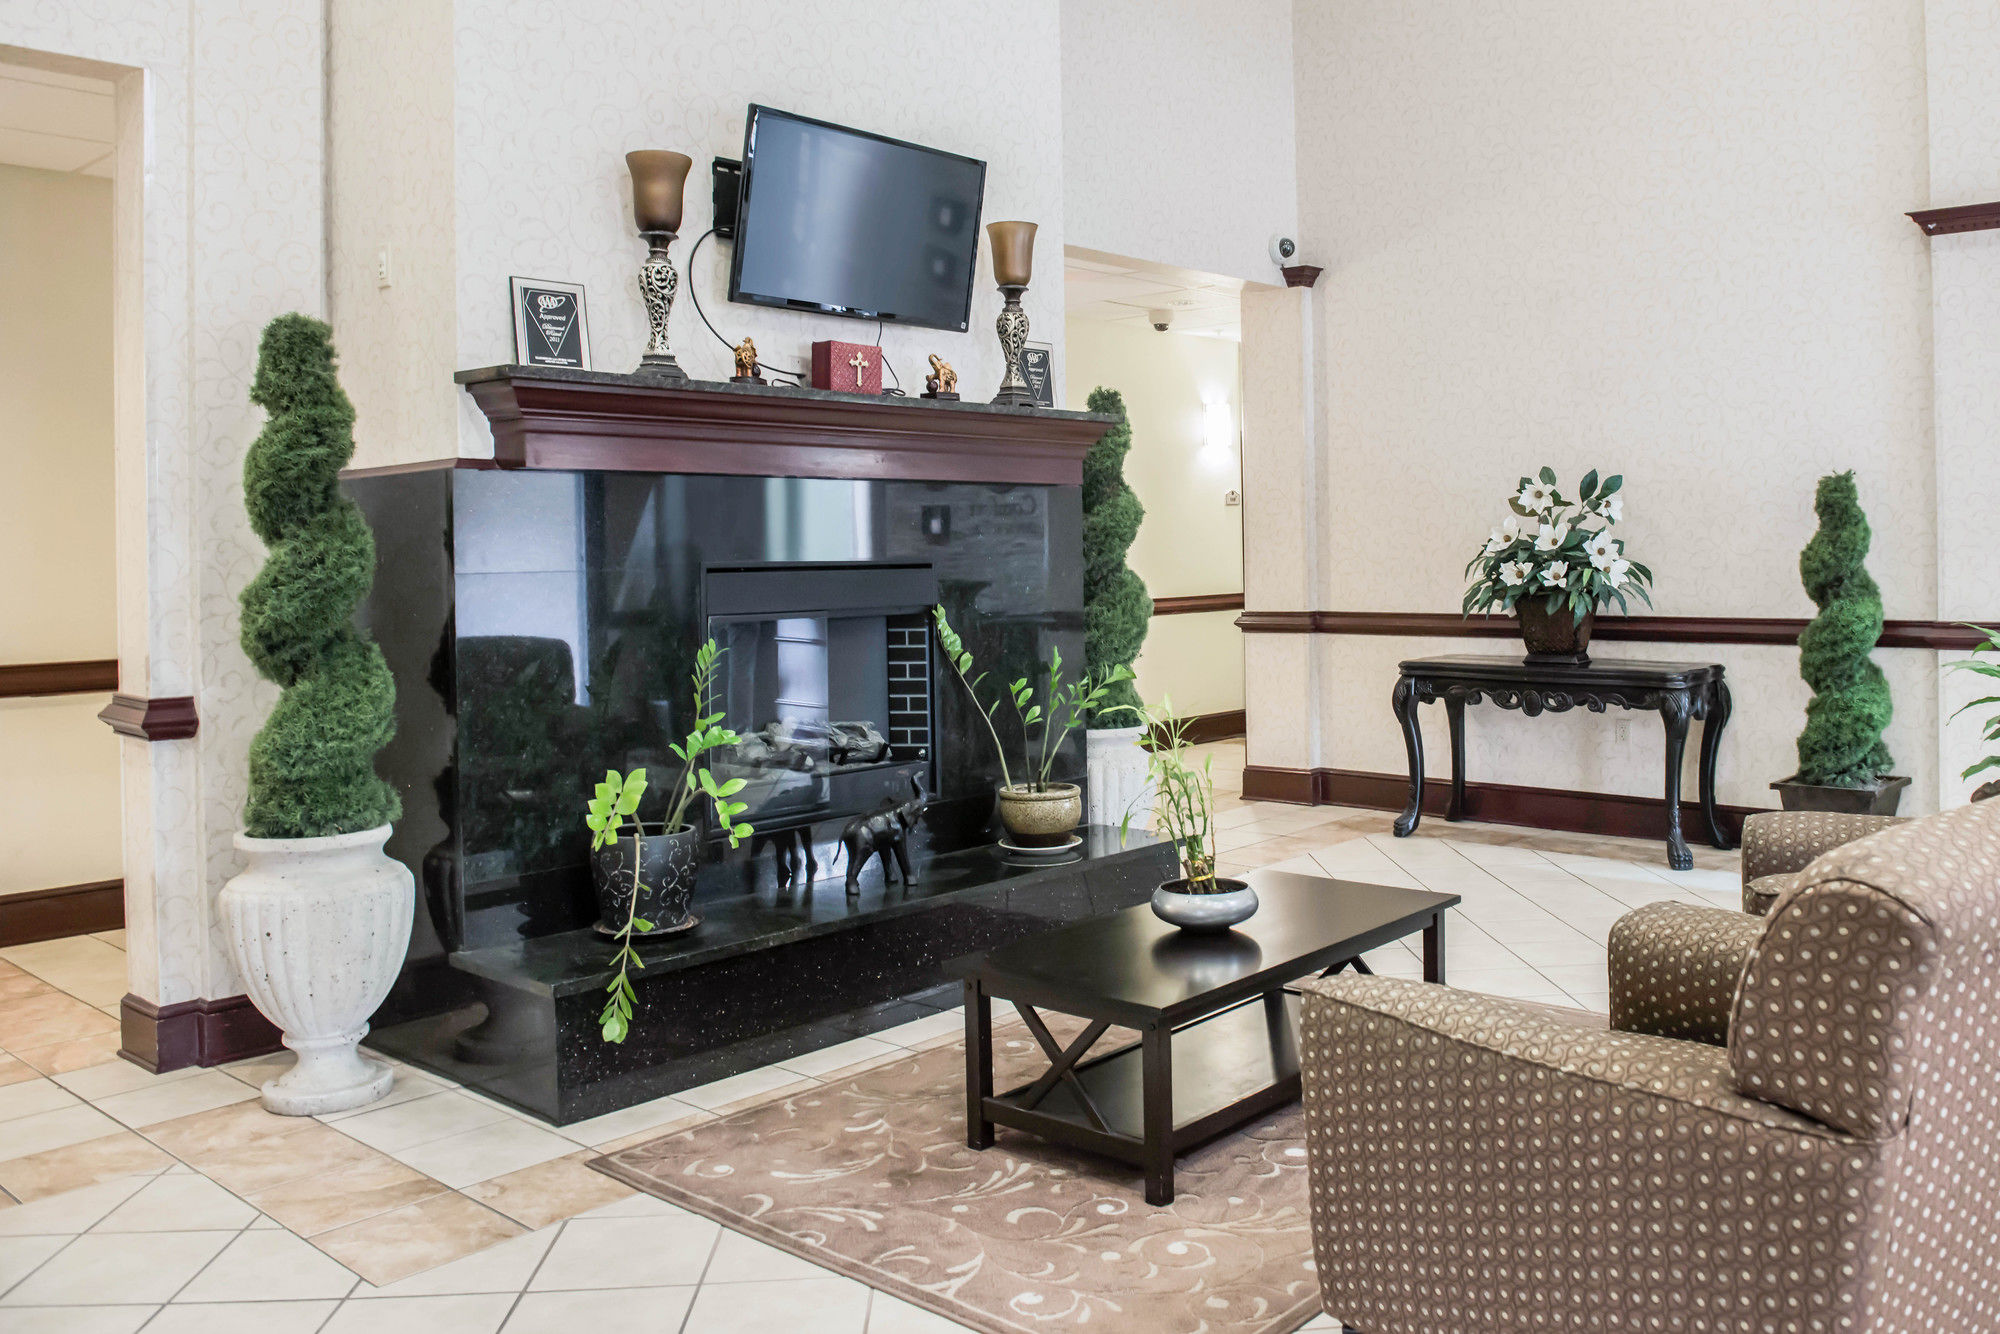 Comfort Inn & Suites in Midway, FL